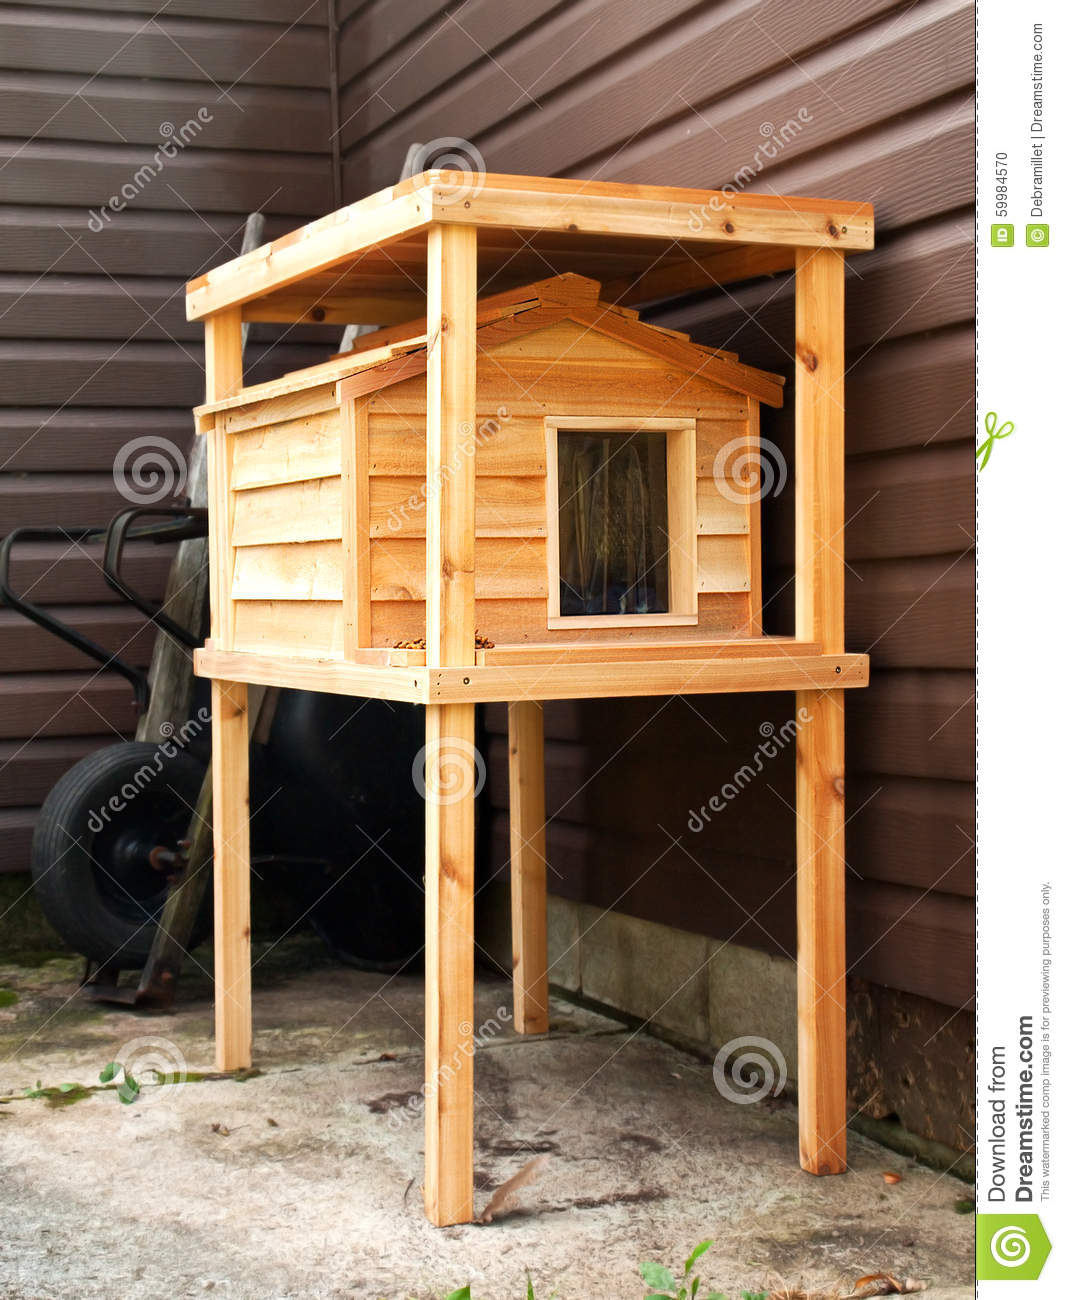 Feral Cat House Stock Photo Image 59984570